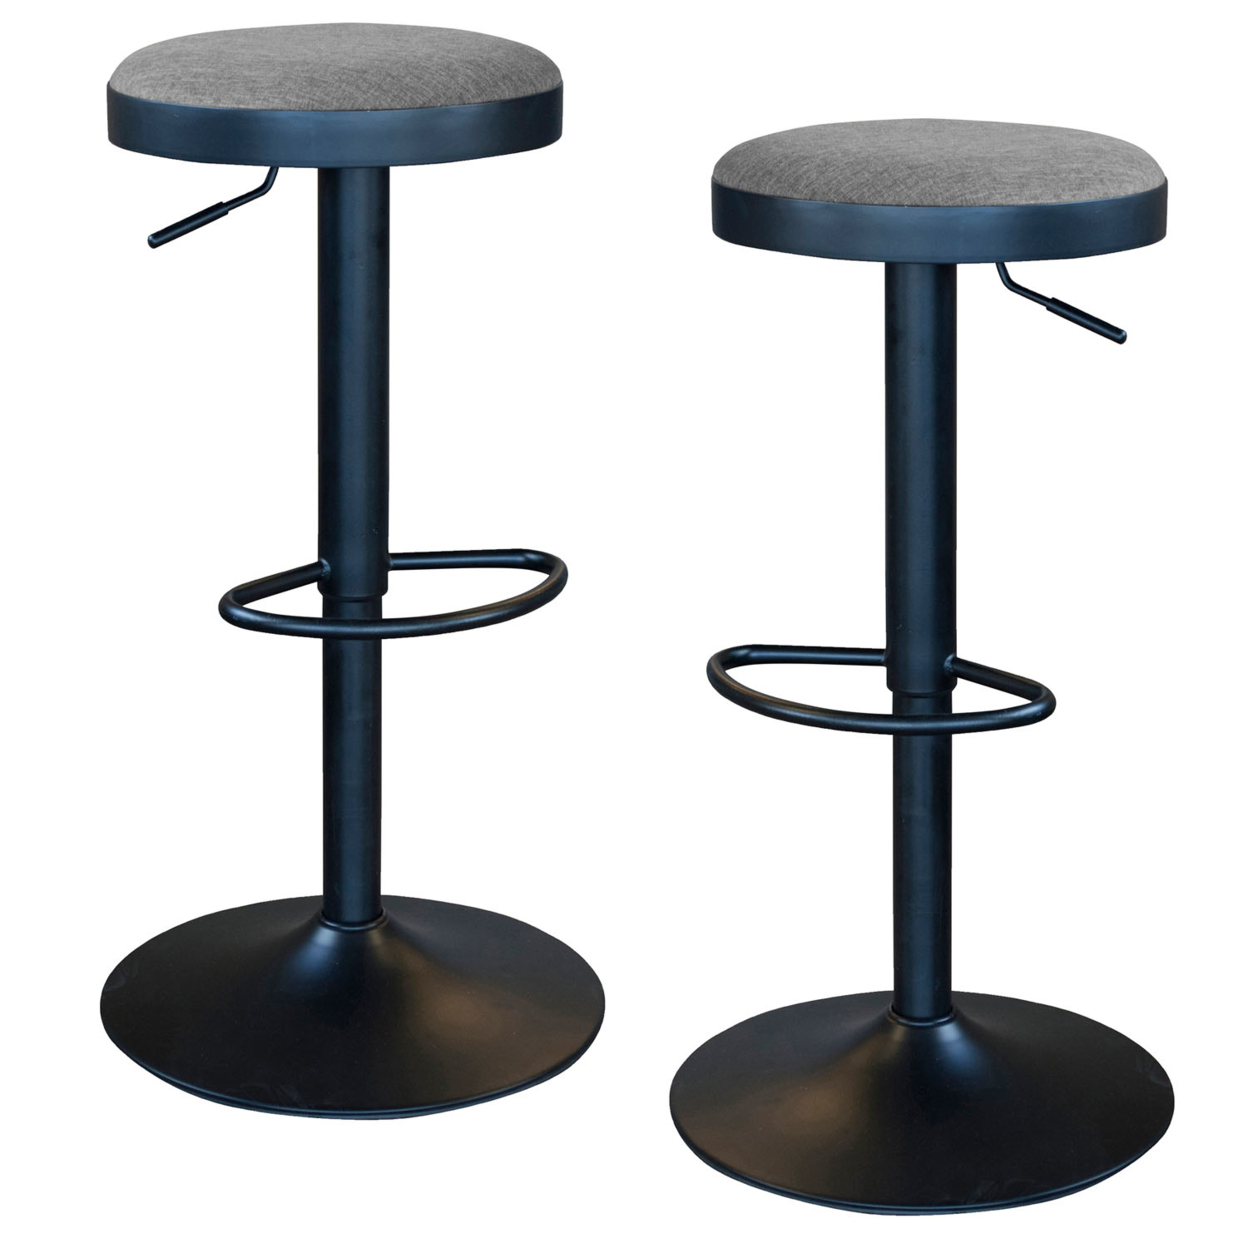 AmeriHome Classic Charcoal Gray Fabric Bar Stool Set